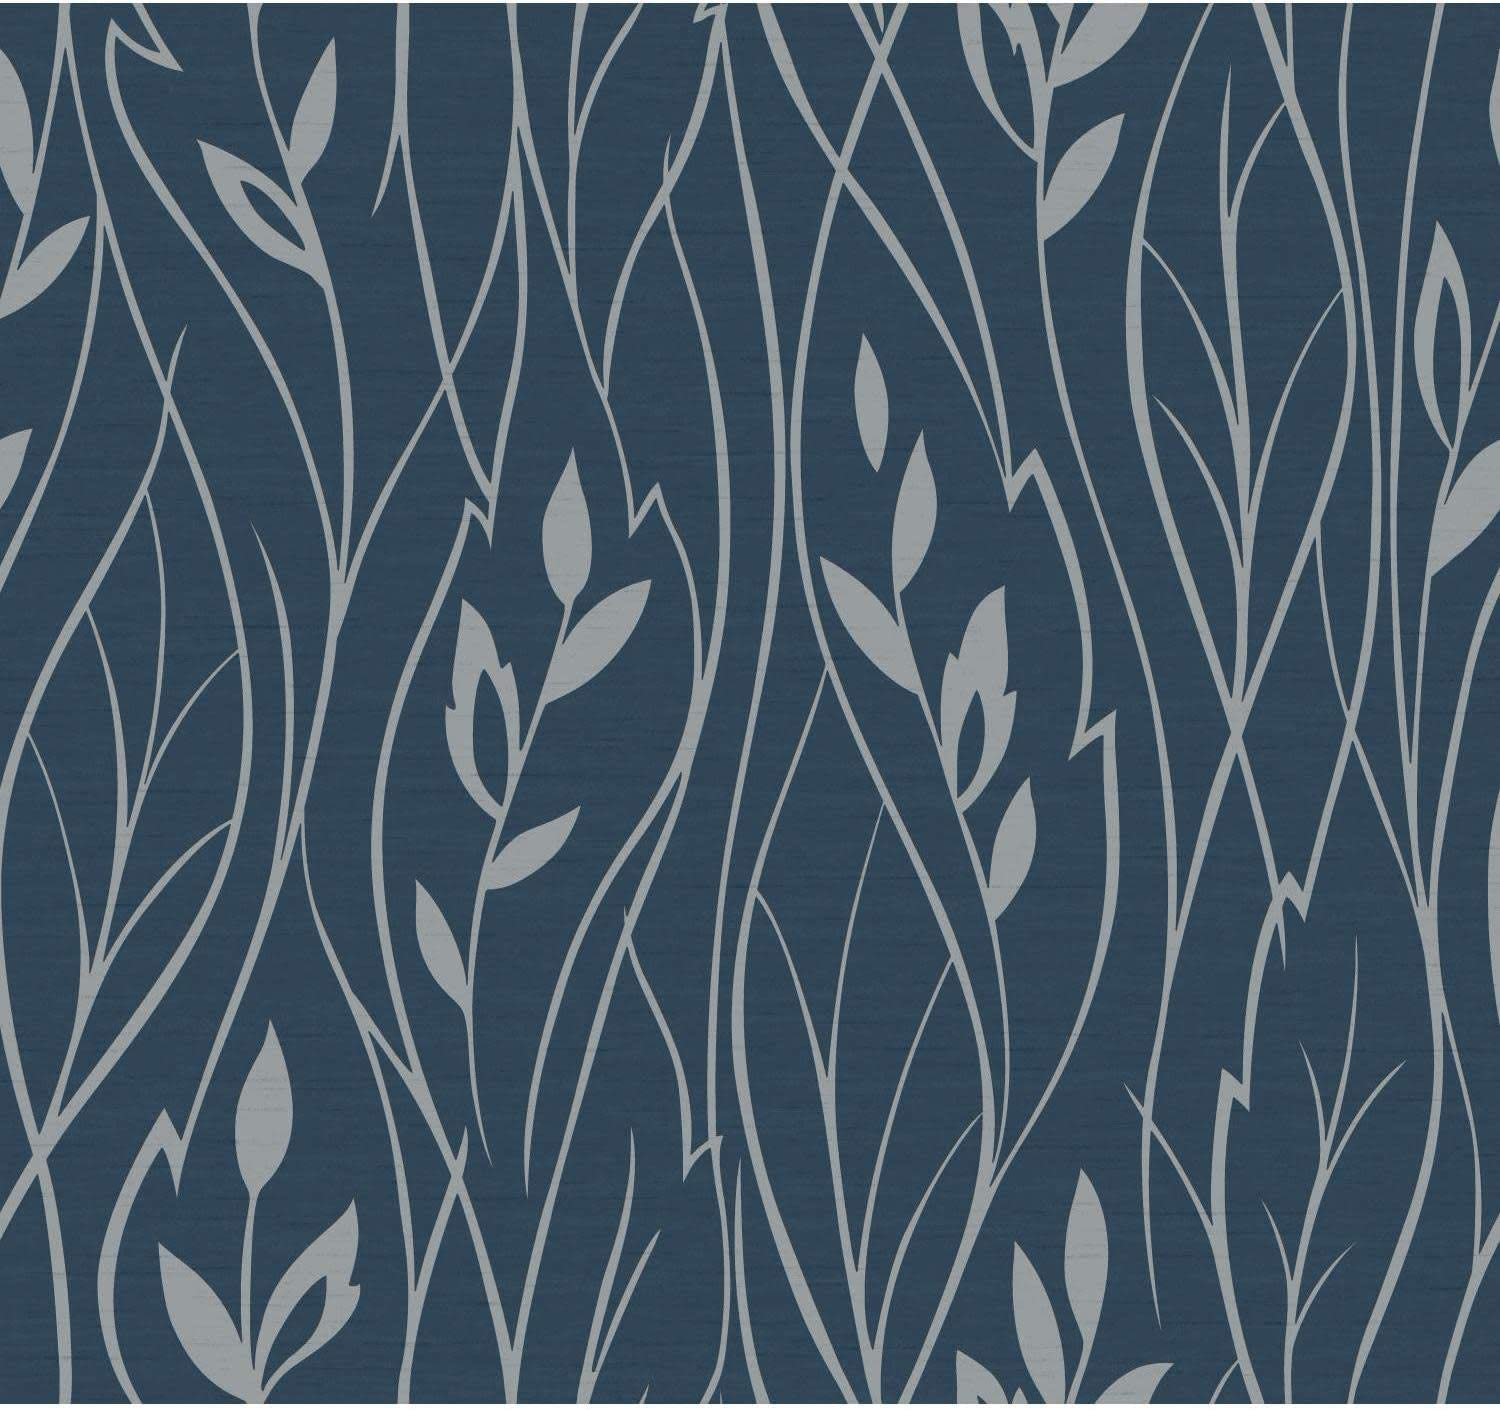 York Wallcoverings Y6200802 60.75 Square Foot - Leaf Silhouette - Unpasted Non-W, N/A